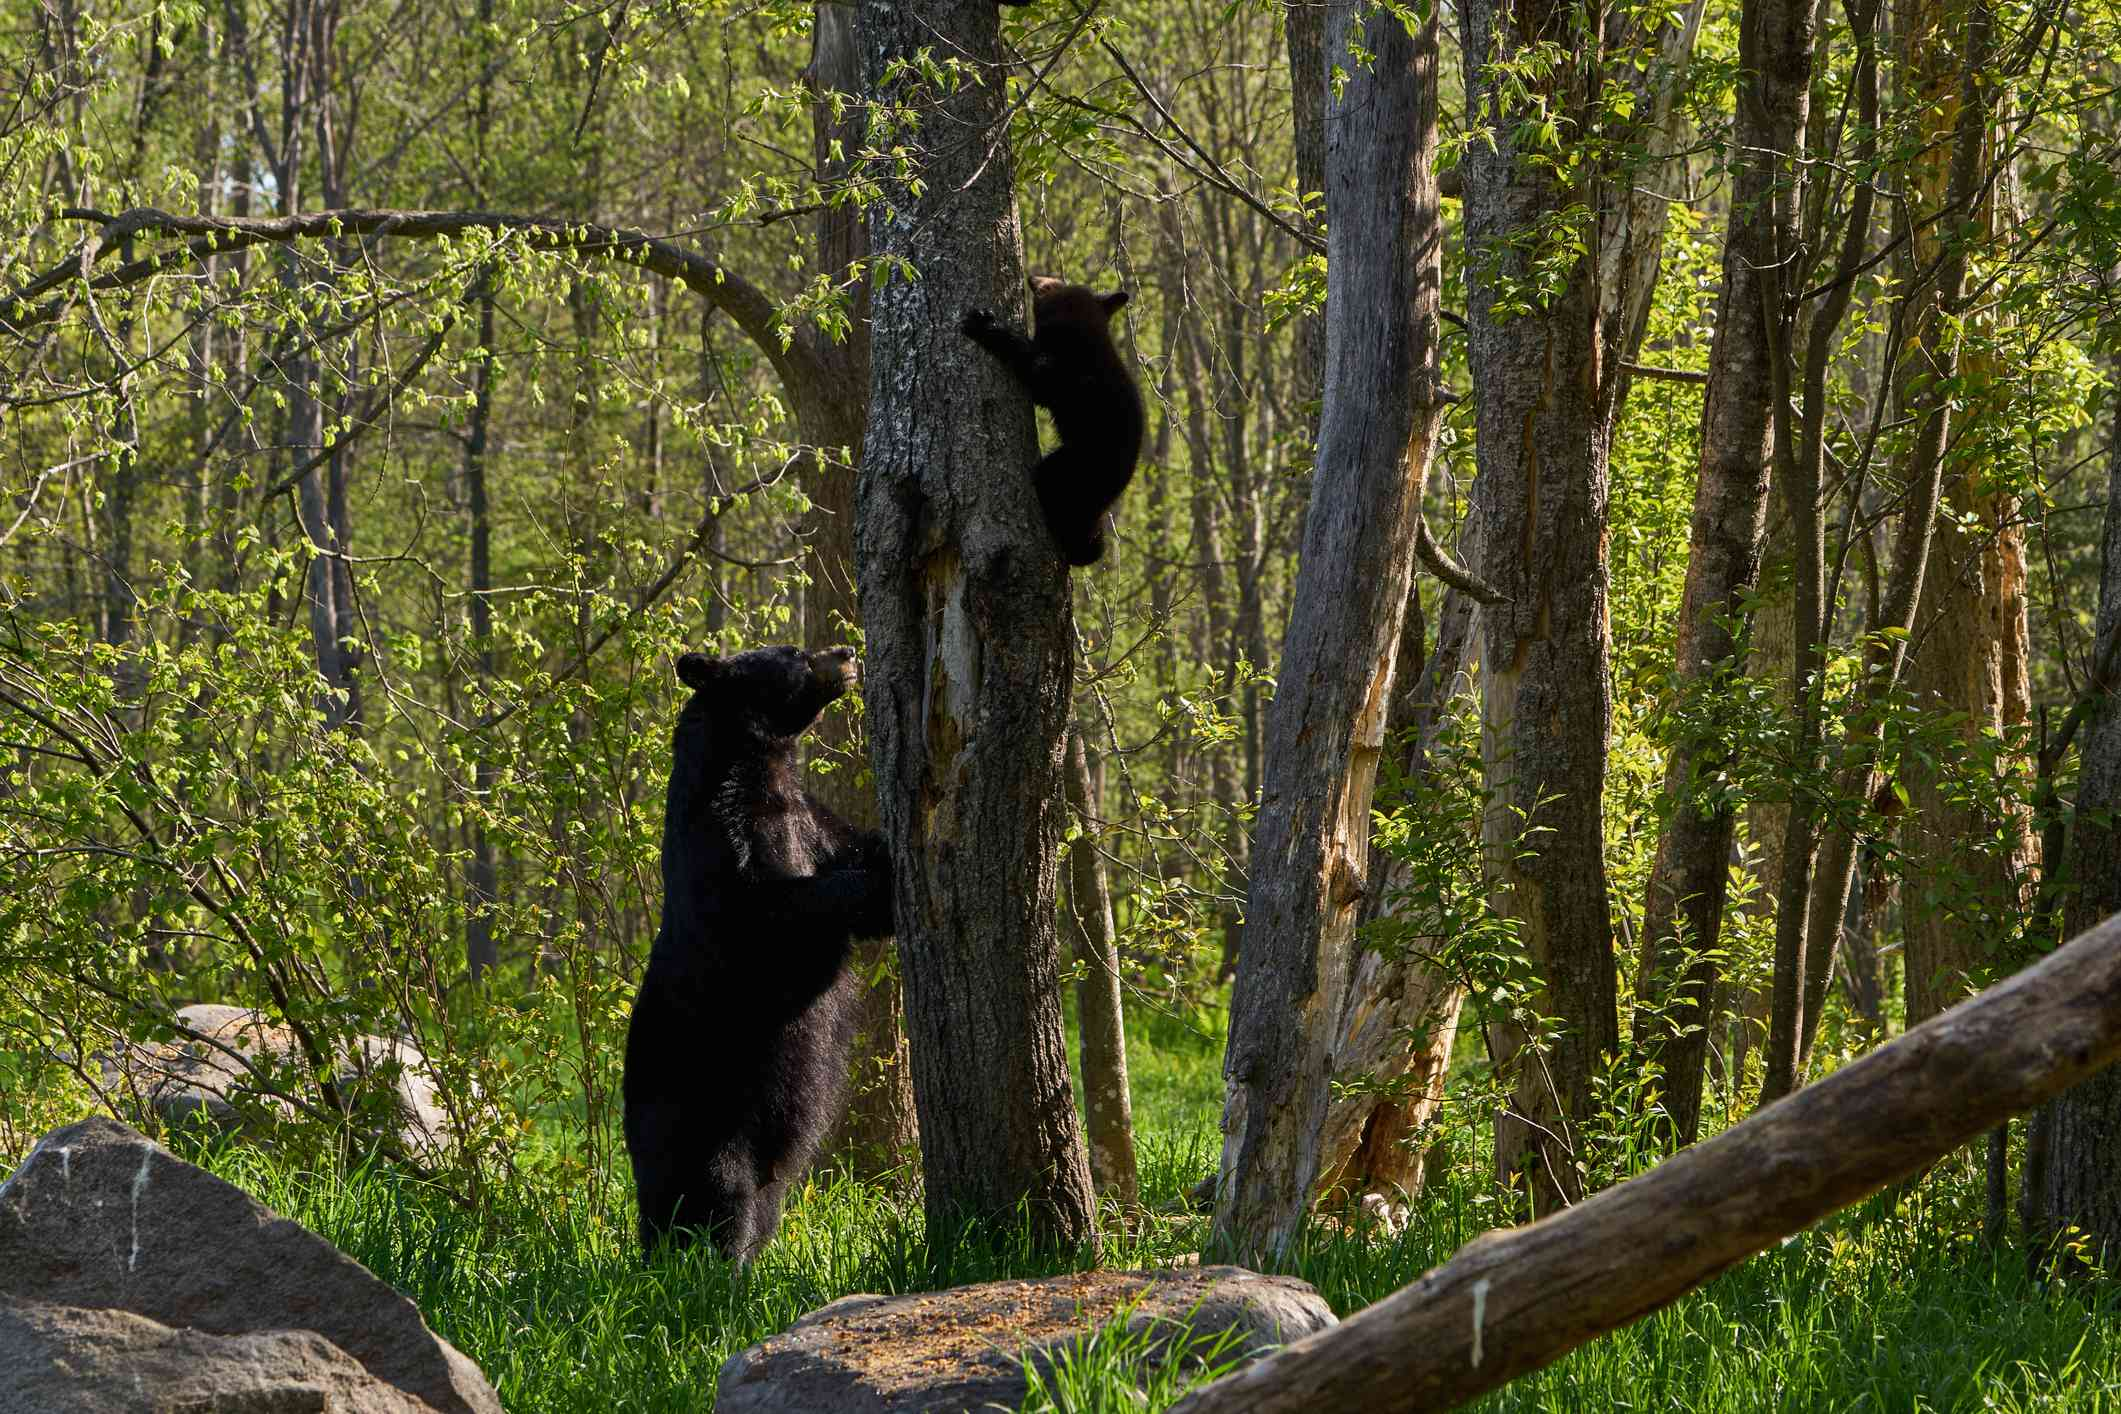 A female black bear teaching her young cub to climb a tree in the forest